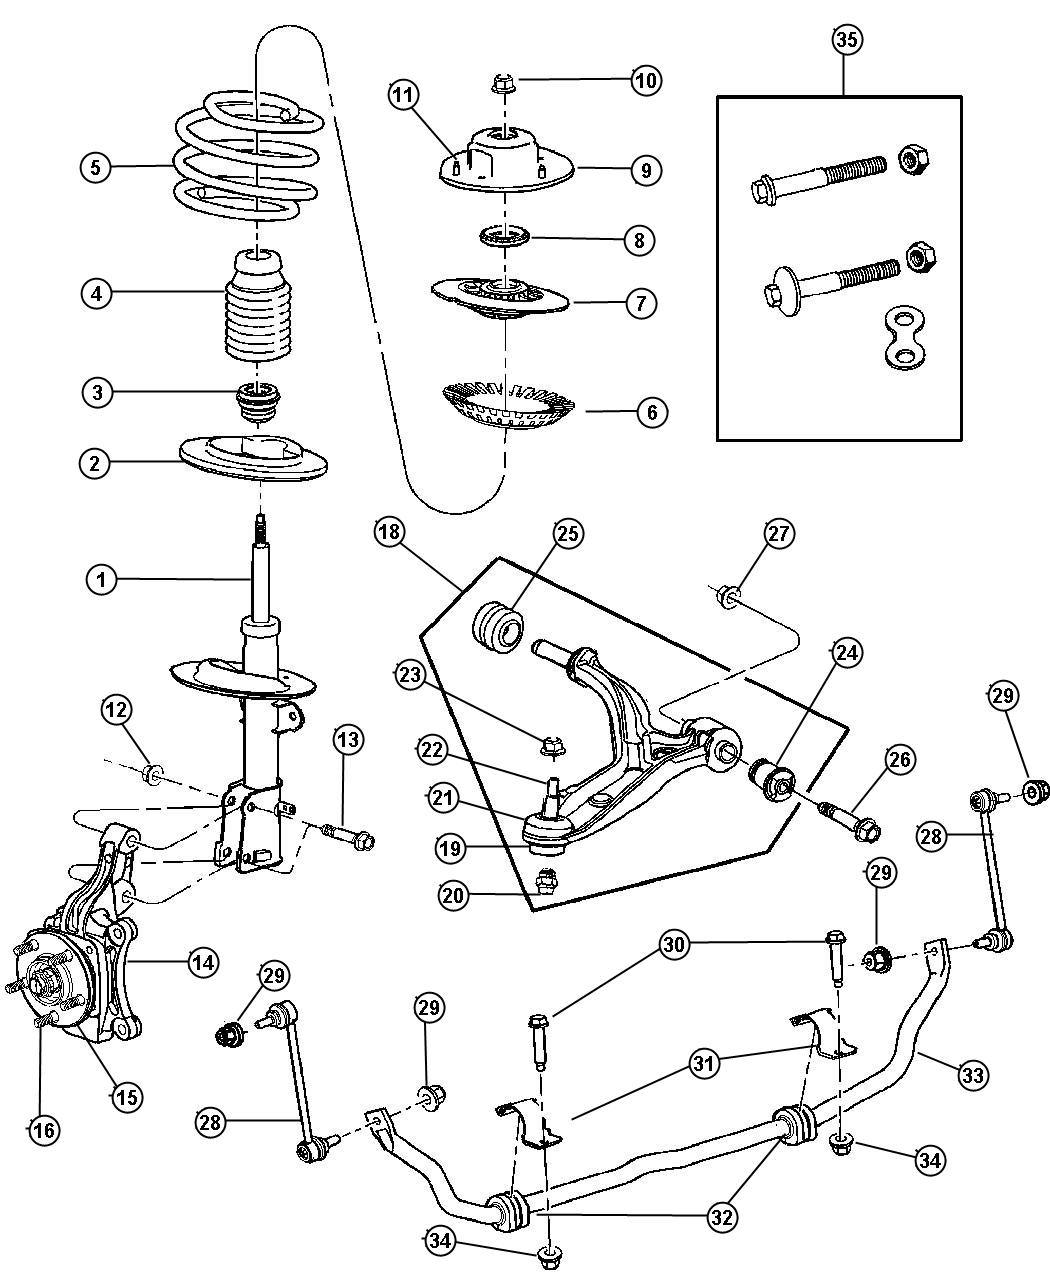 2000 dodge stratus fuse box diagram wiring schematic